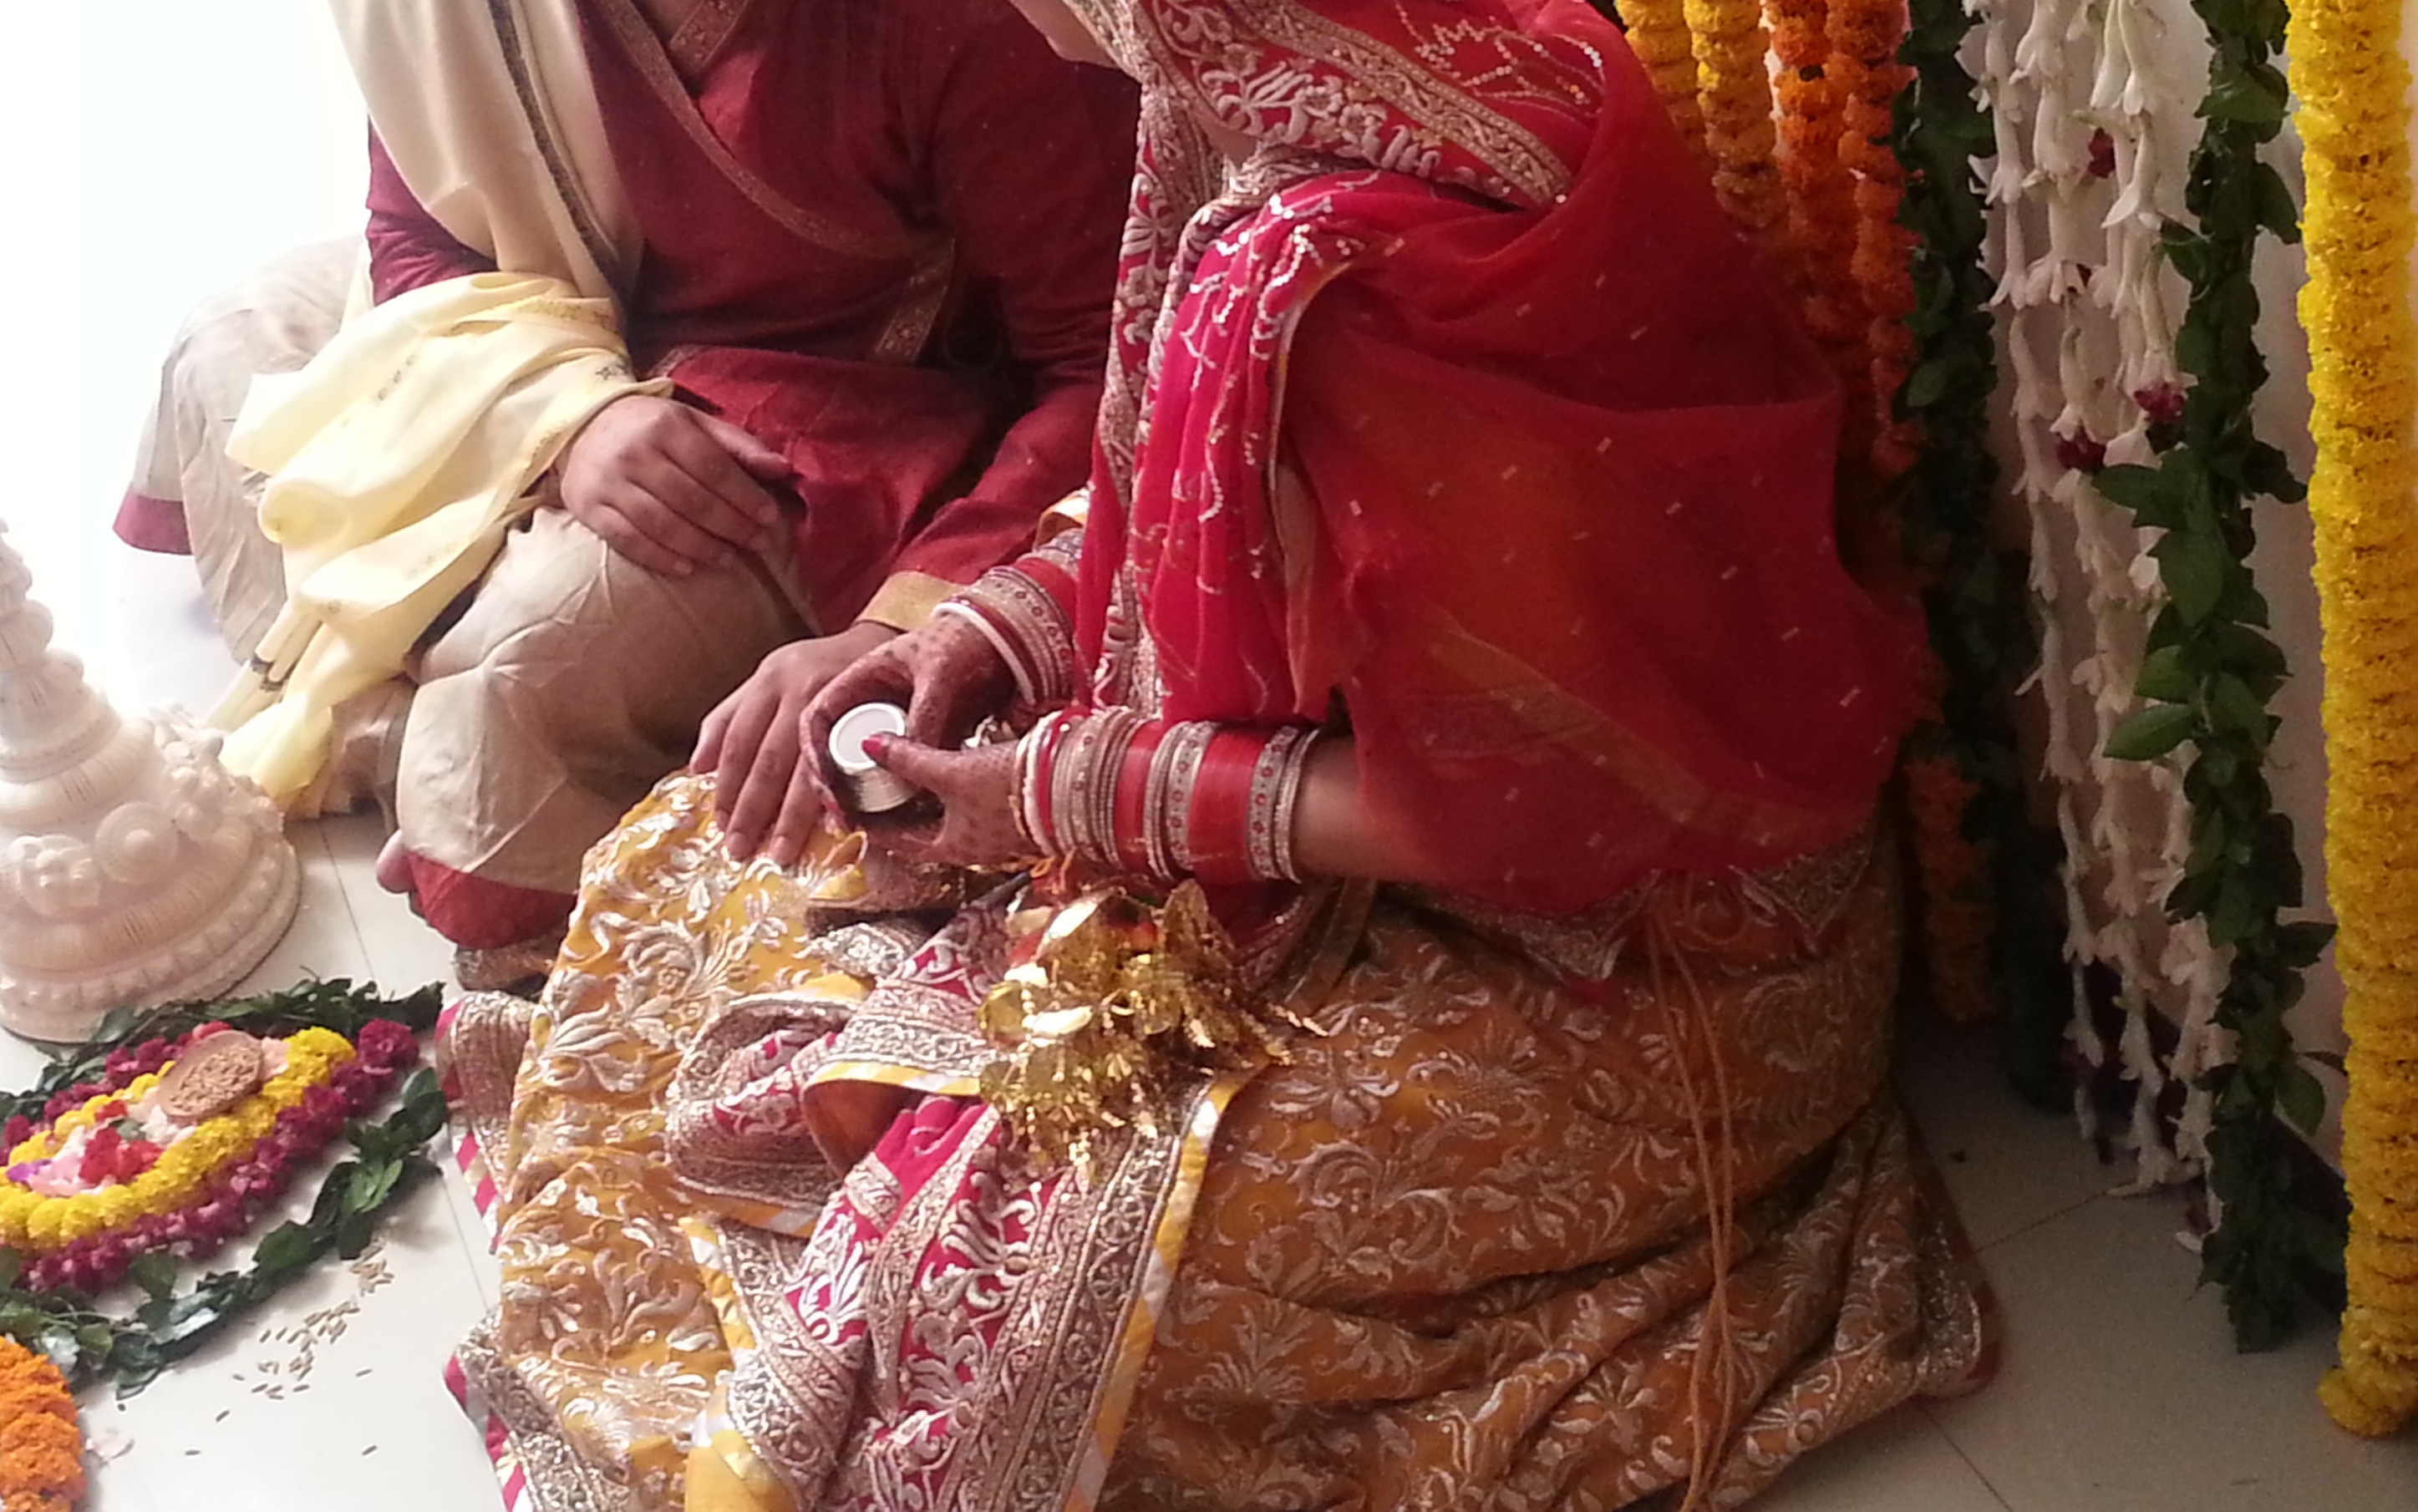 essay on hindu marriage Haf policy brief: hinduism and homosexuality  states in his essay on homosexuality and hinduism:  is a key marriage ritual that enunciates seven vows of an.